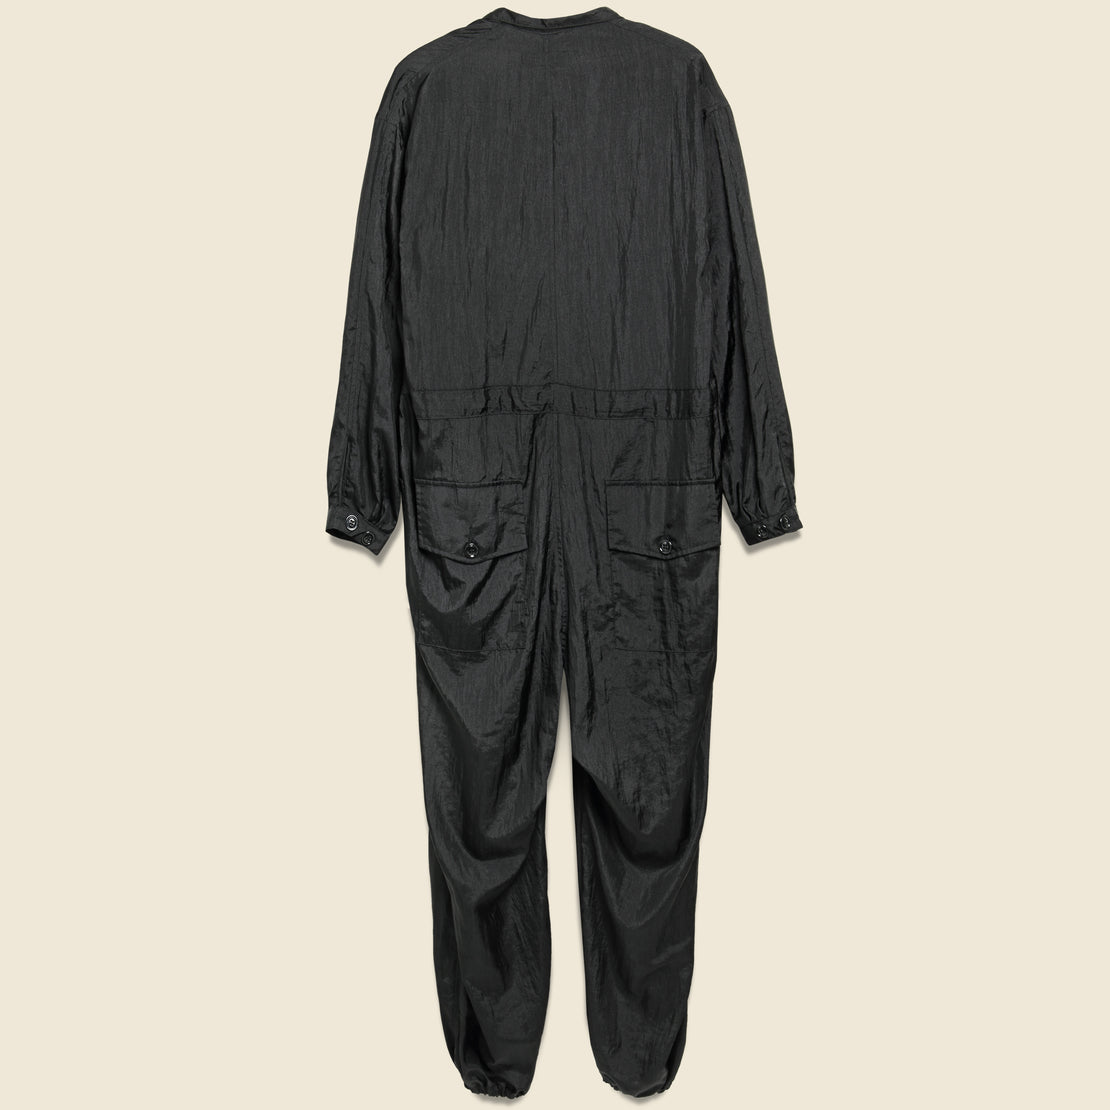 Taslan Nylon Type-D Military Tsunagi Jumpsuit - Black